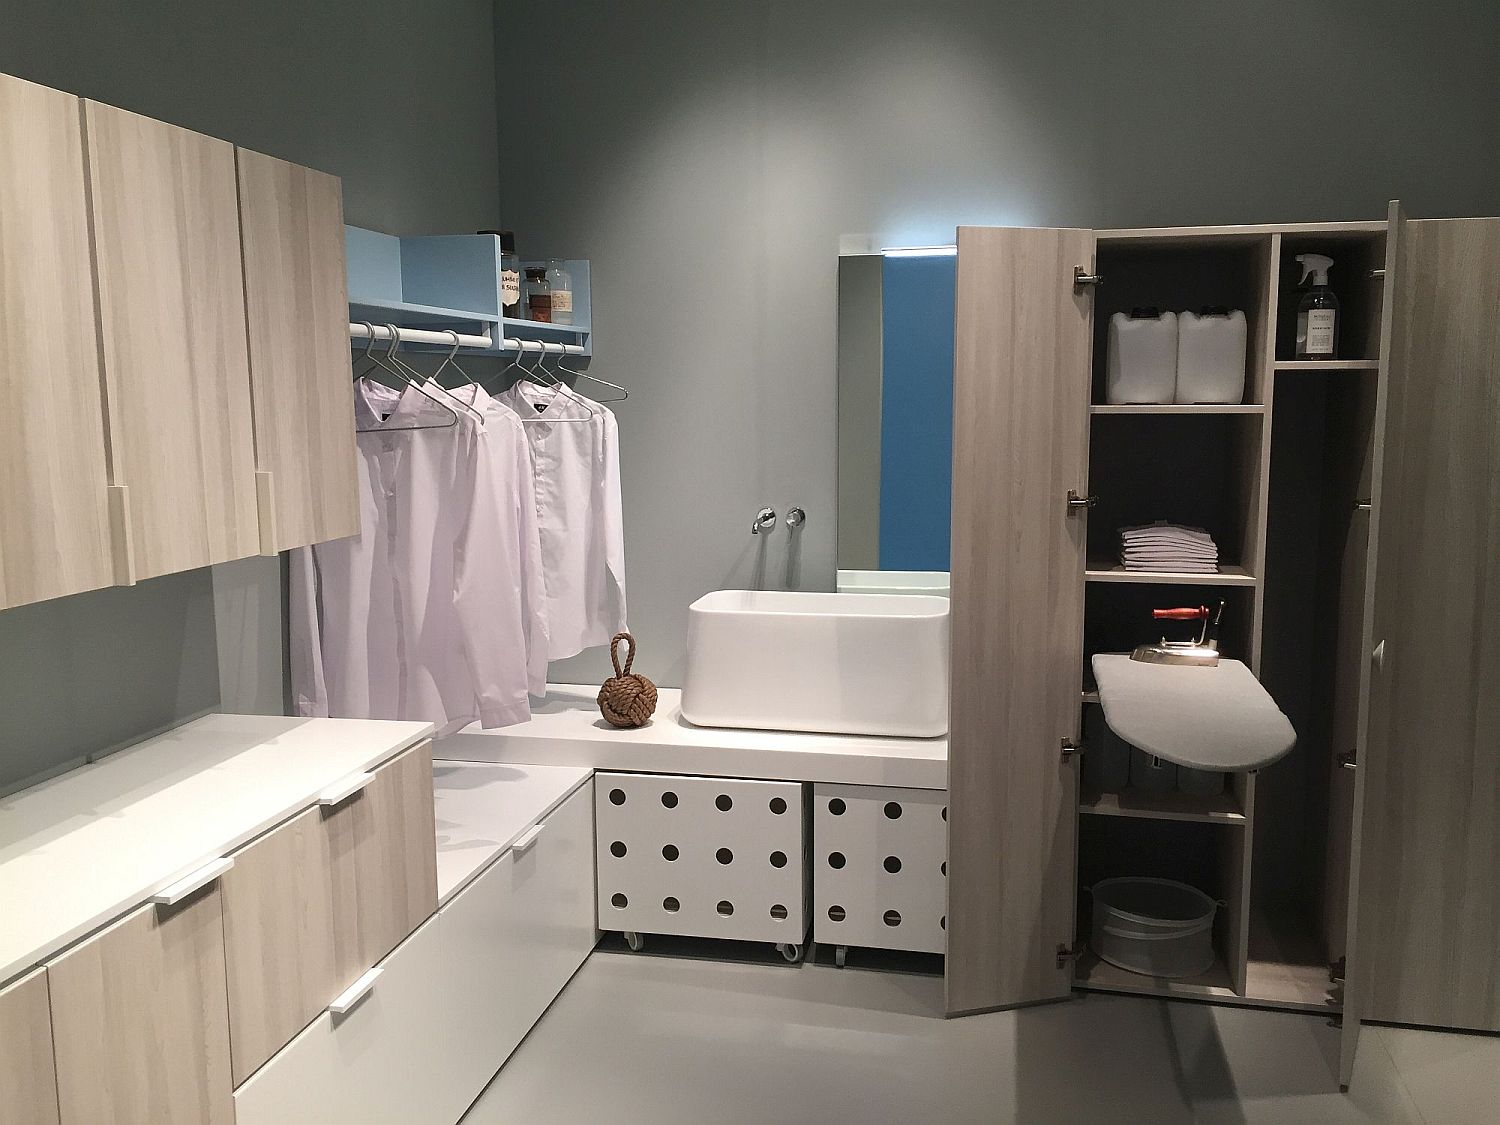 Turn-your-bathroom-into-a-laundry-room-as-well